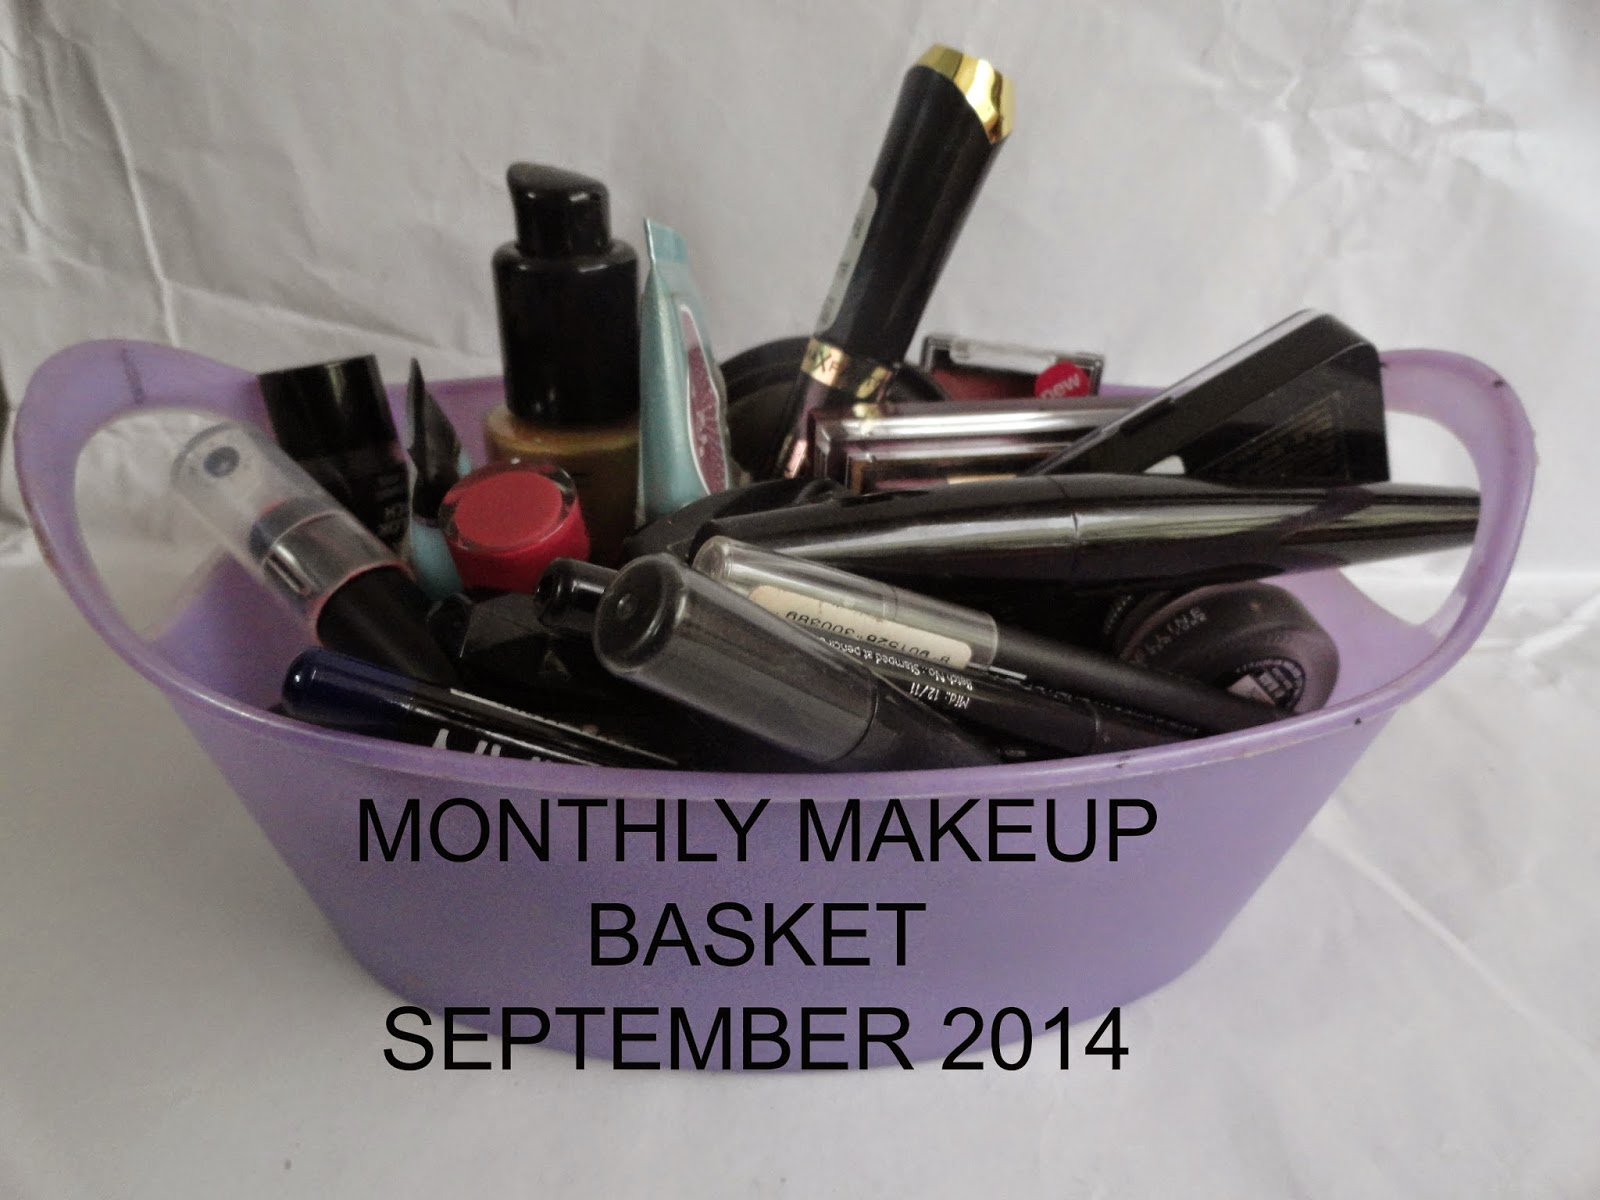 Monthly Makeup Basket: September 2014 image